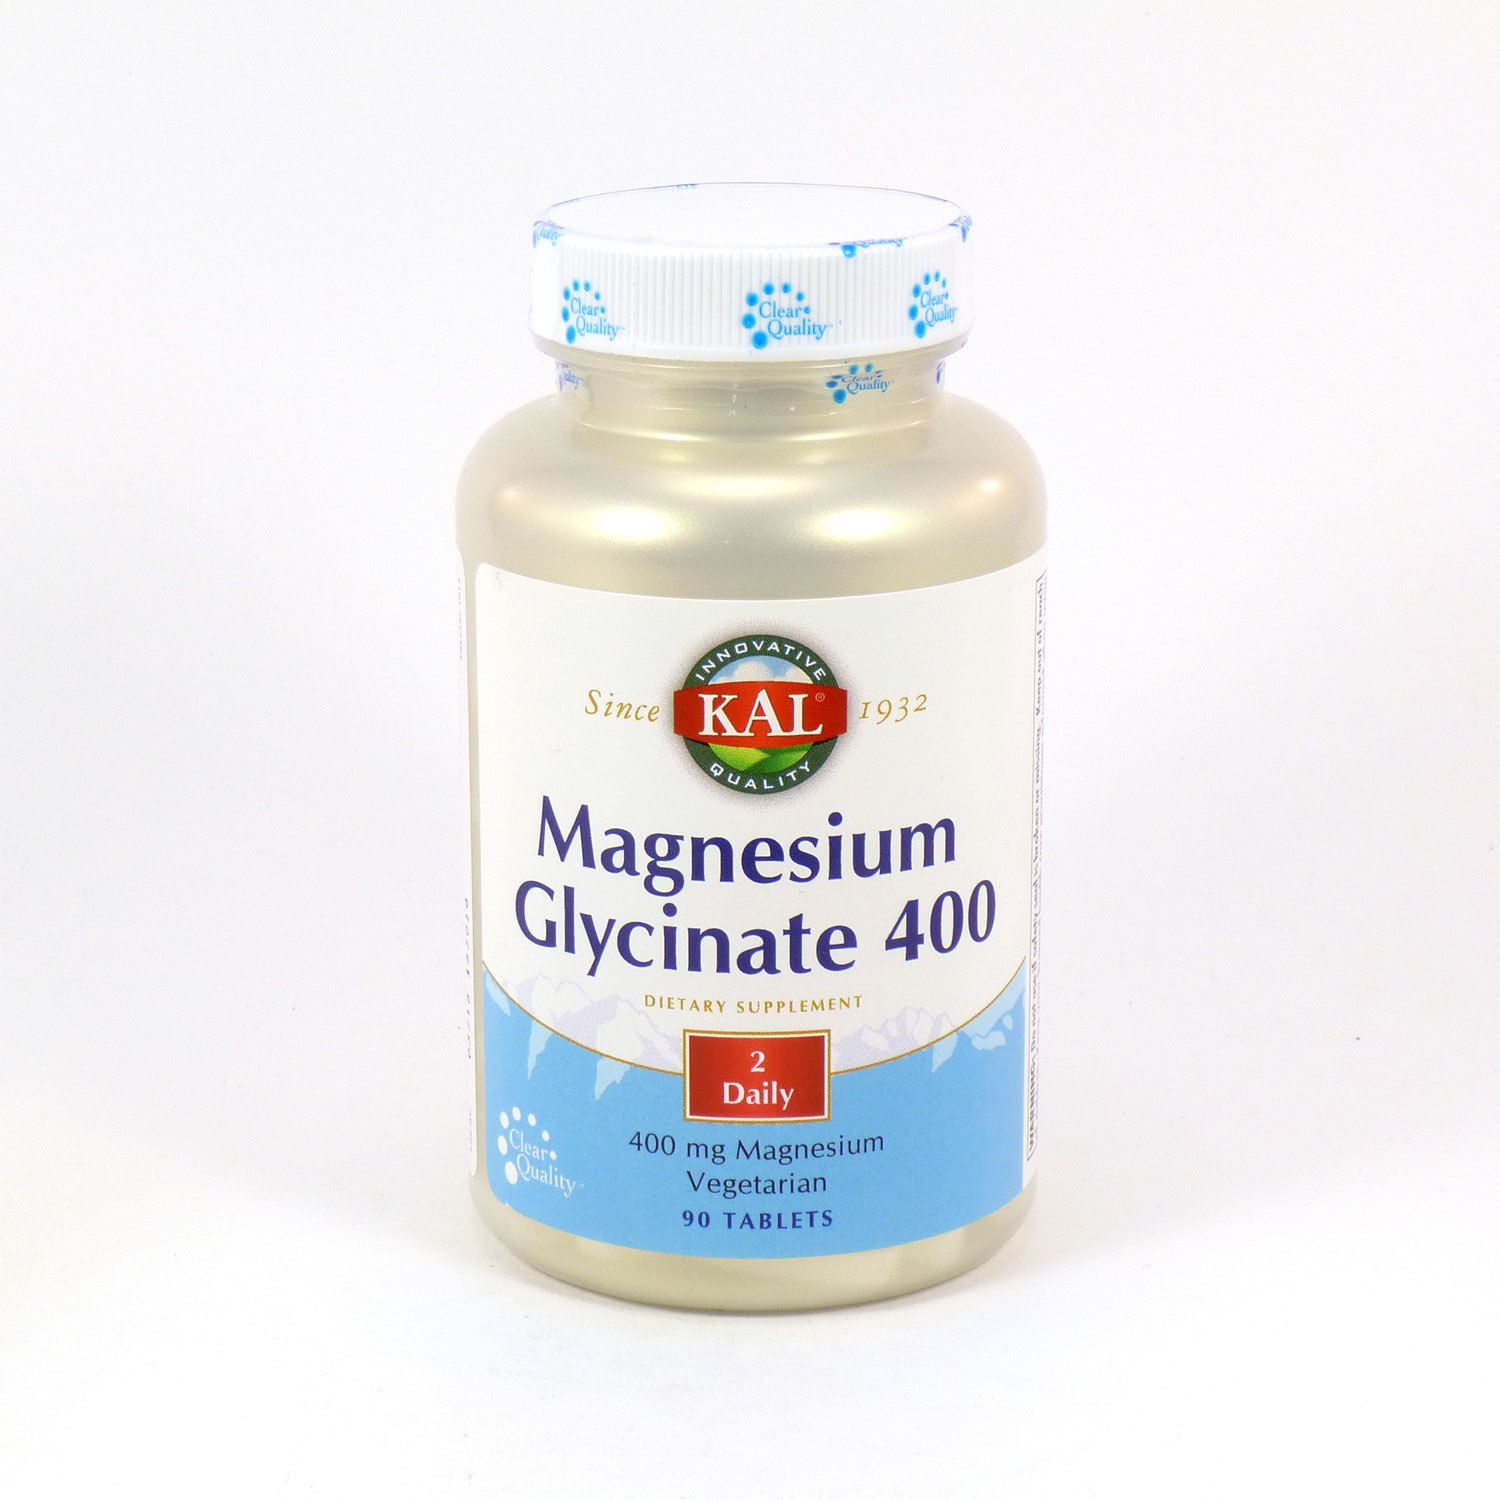 Image of a bottle of KAL Magnesium Glycinate 400